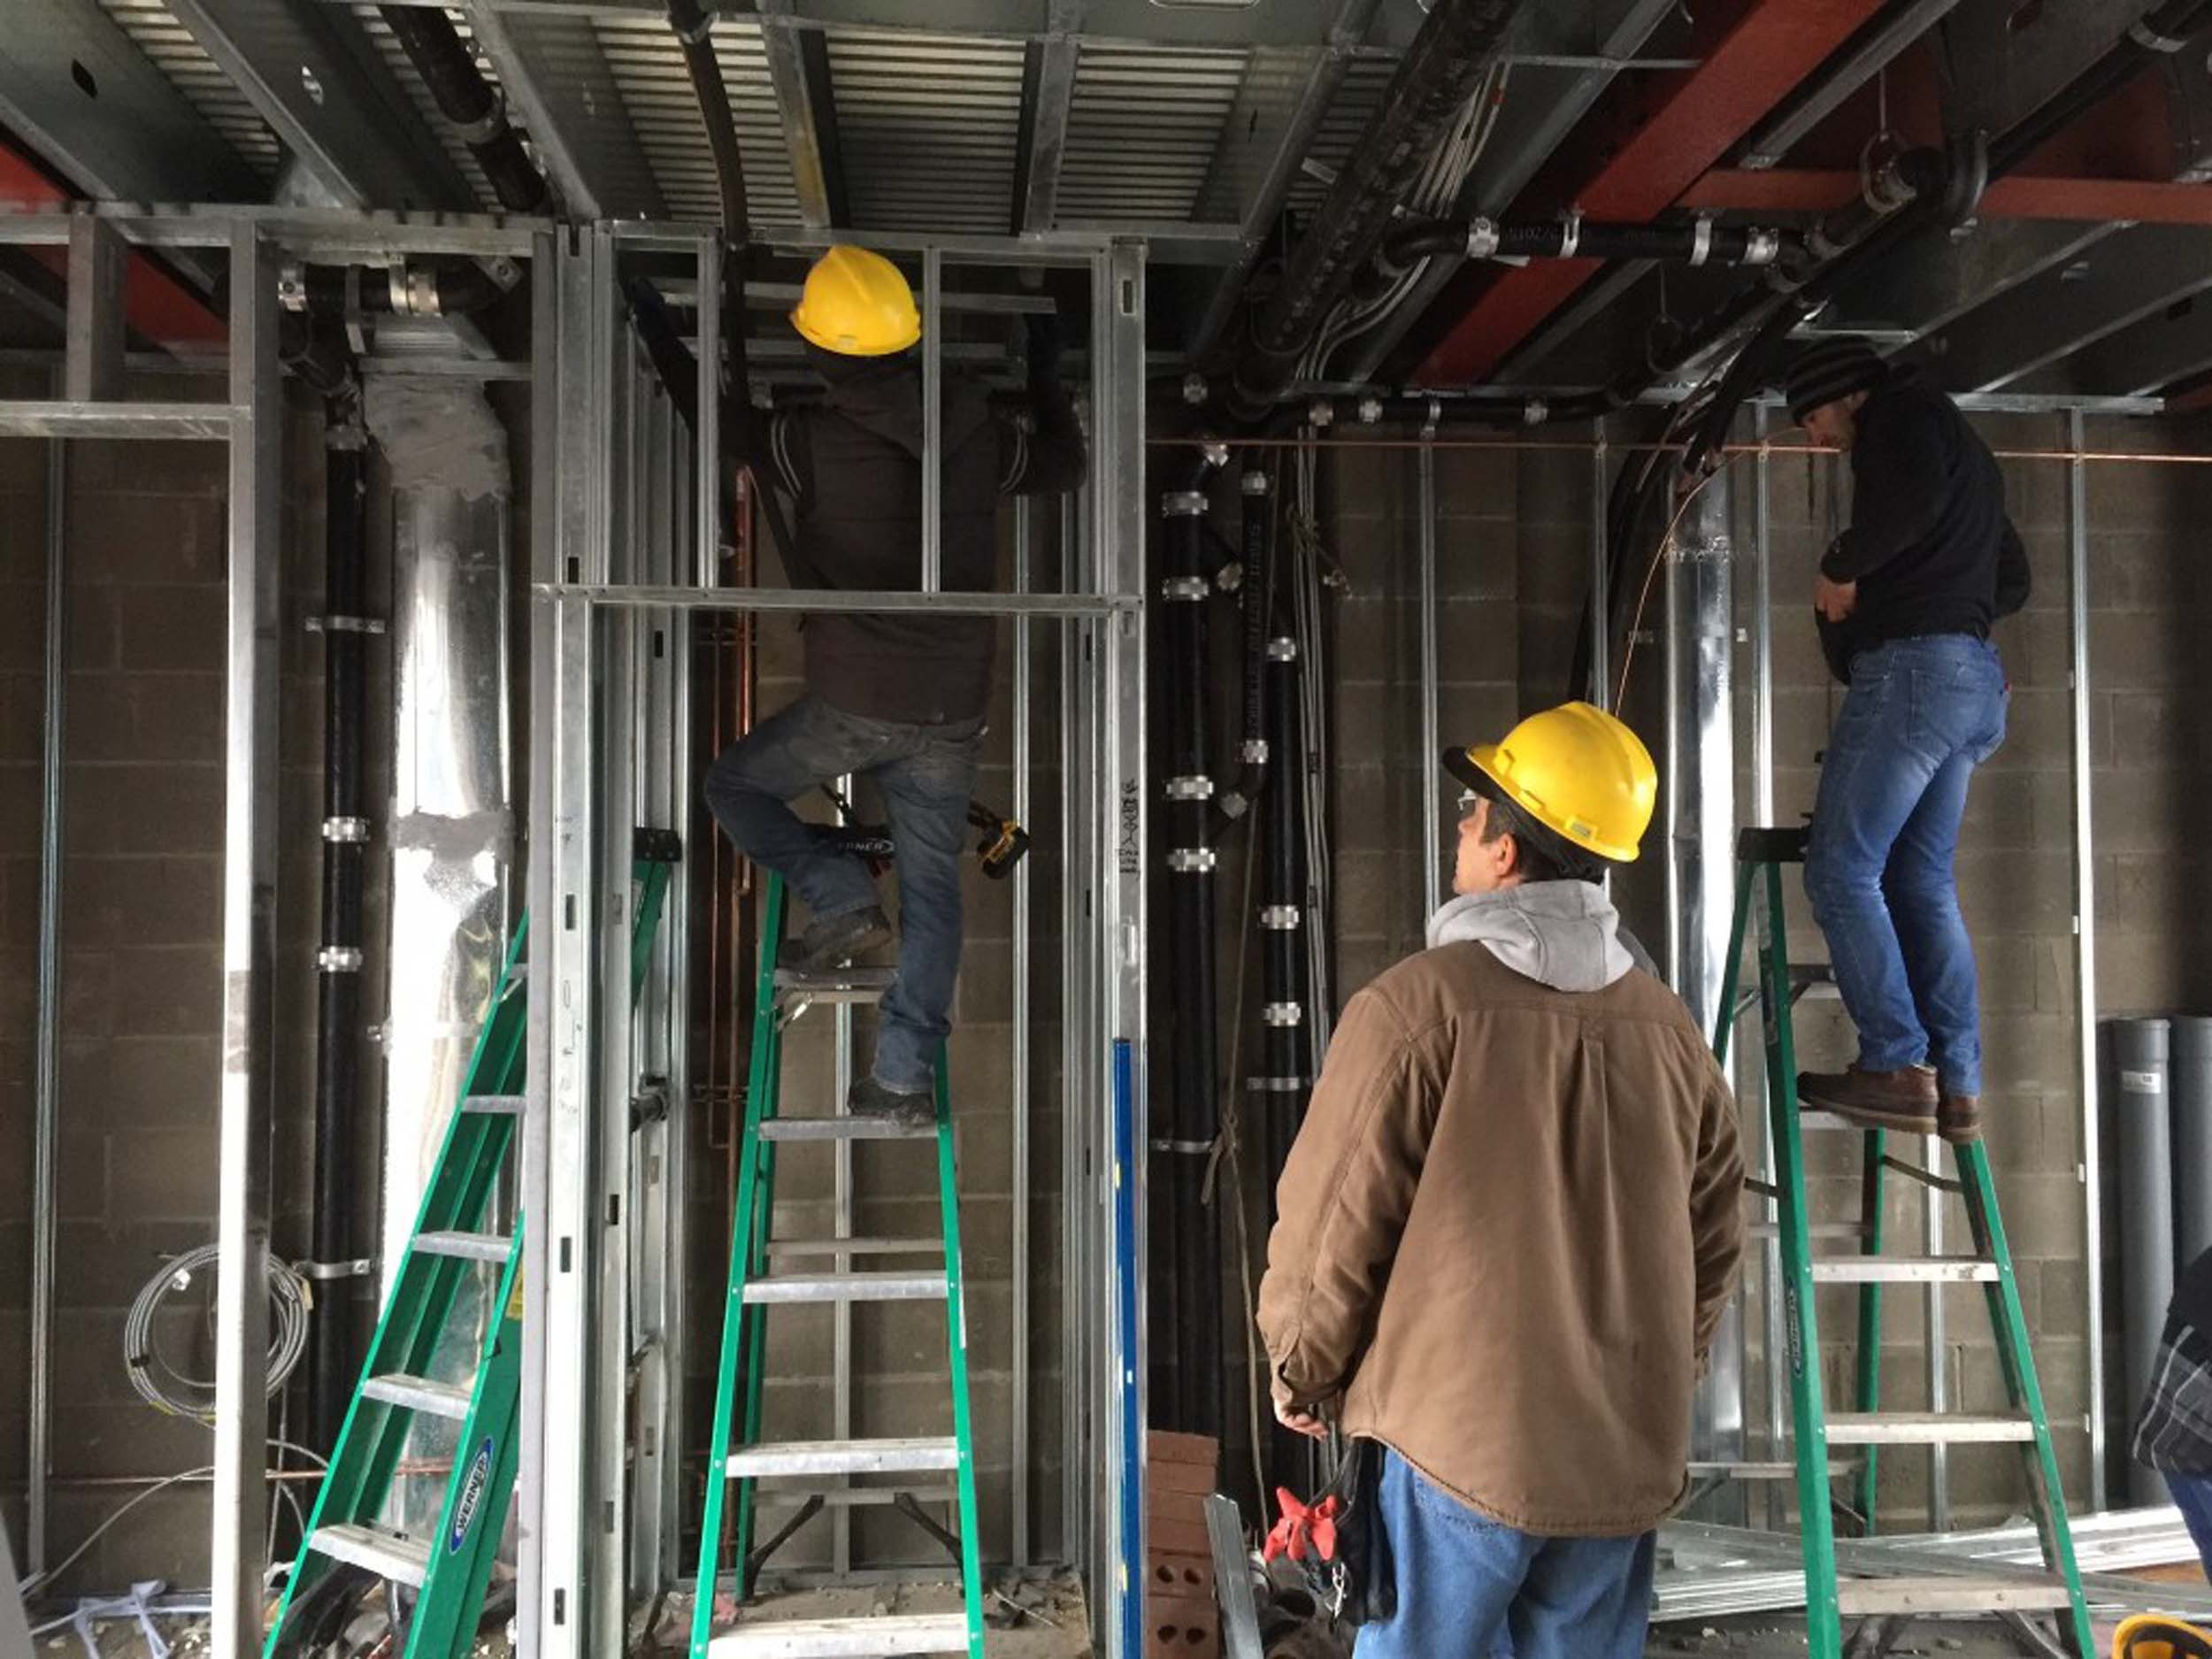 Workers outfitting the bottom of the metal decking with plumbing pipes